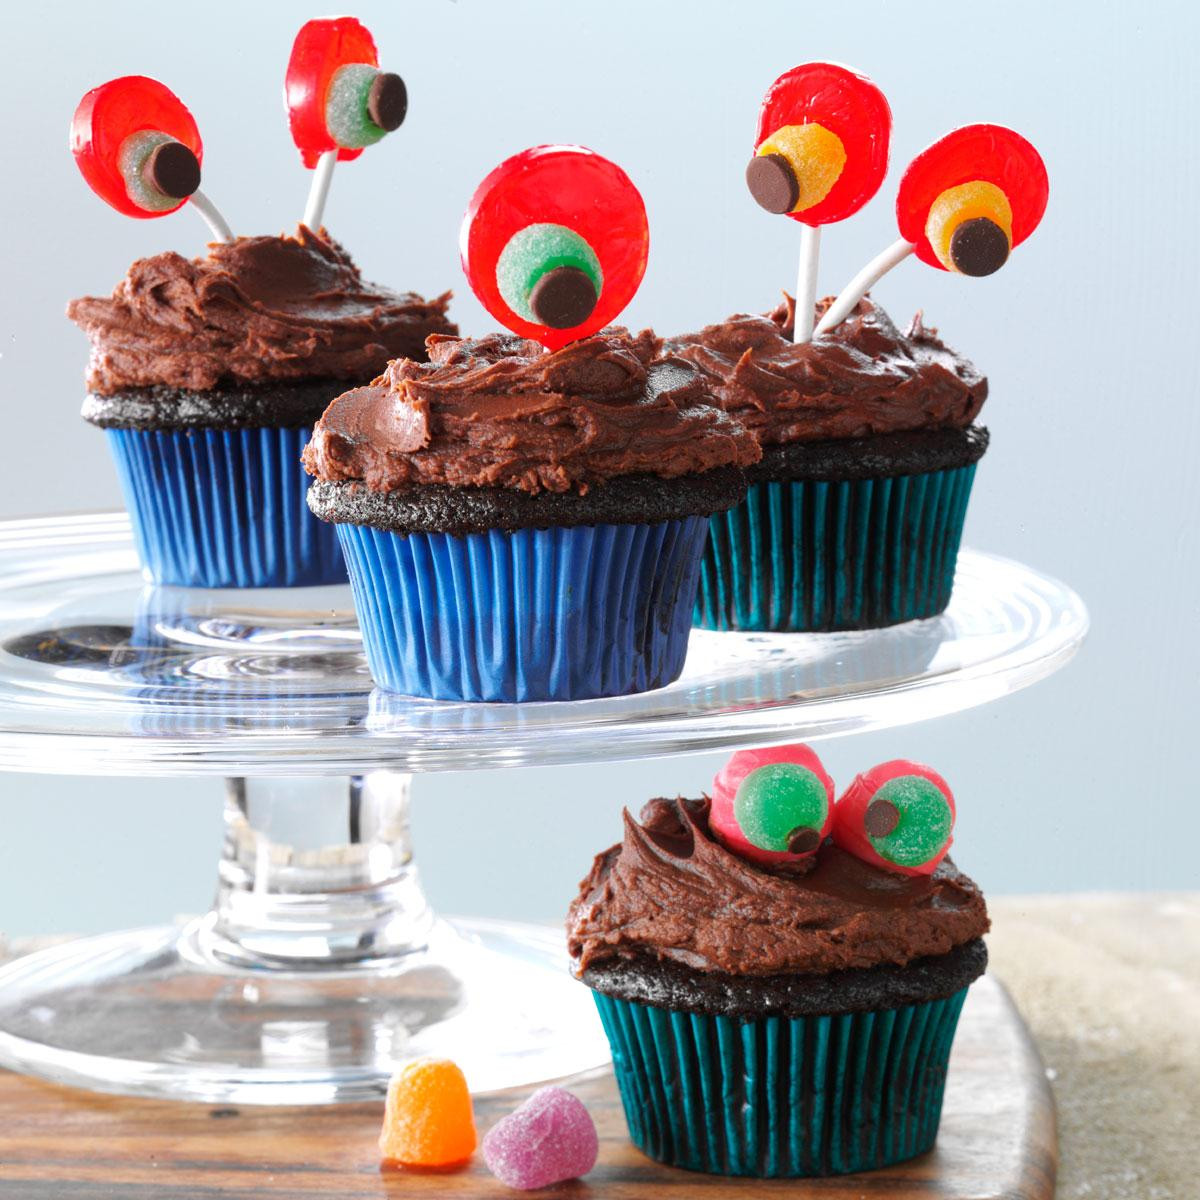 Recipes For Halloween Cupcakes  Devil s Food Cupcakes with Chocolaty Frosting Recipe